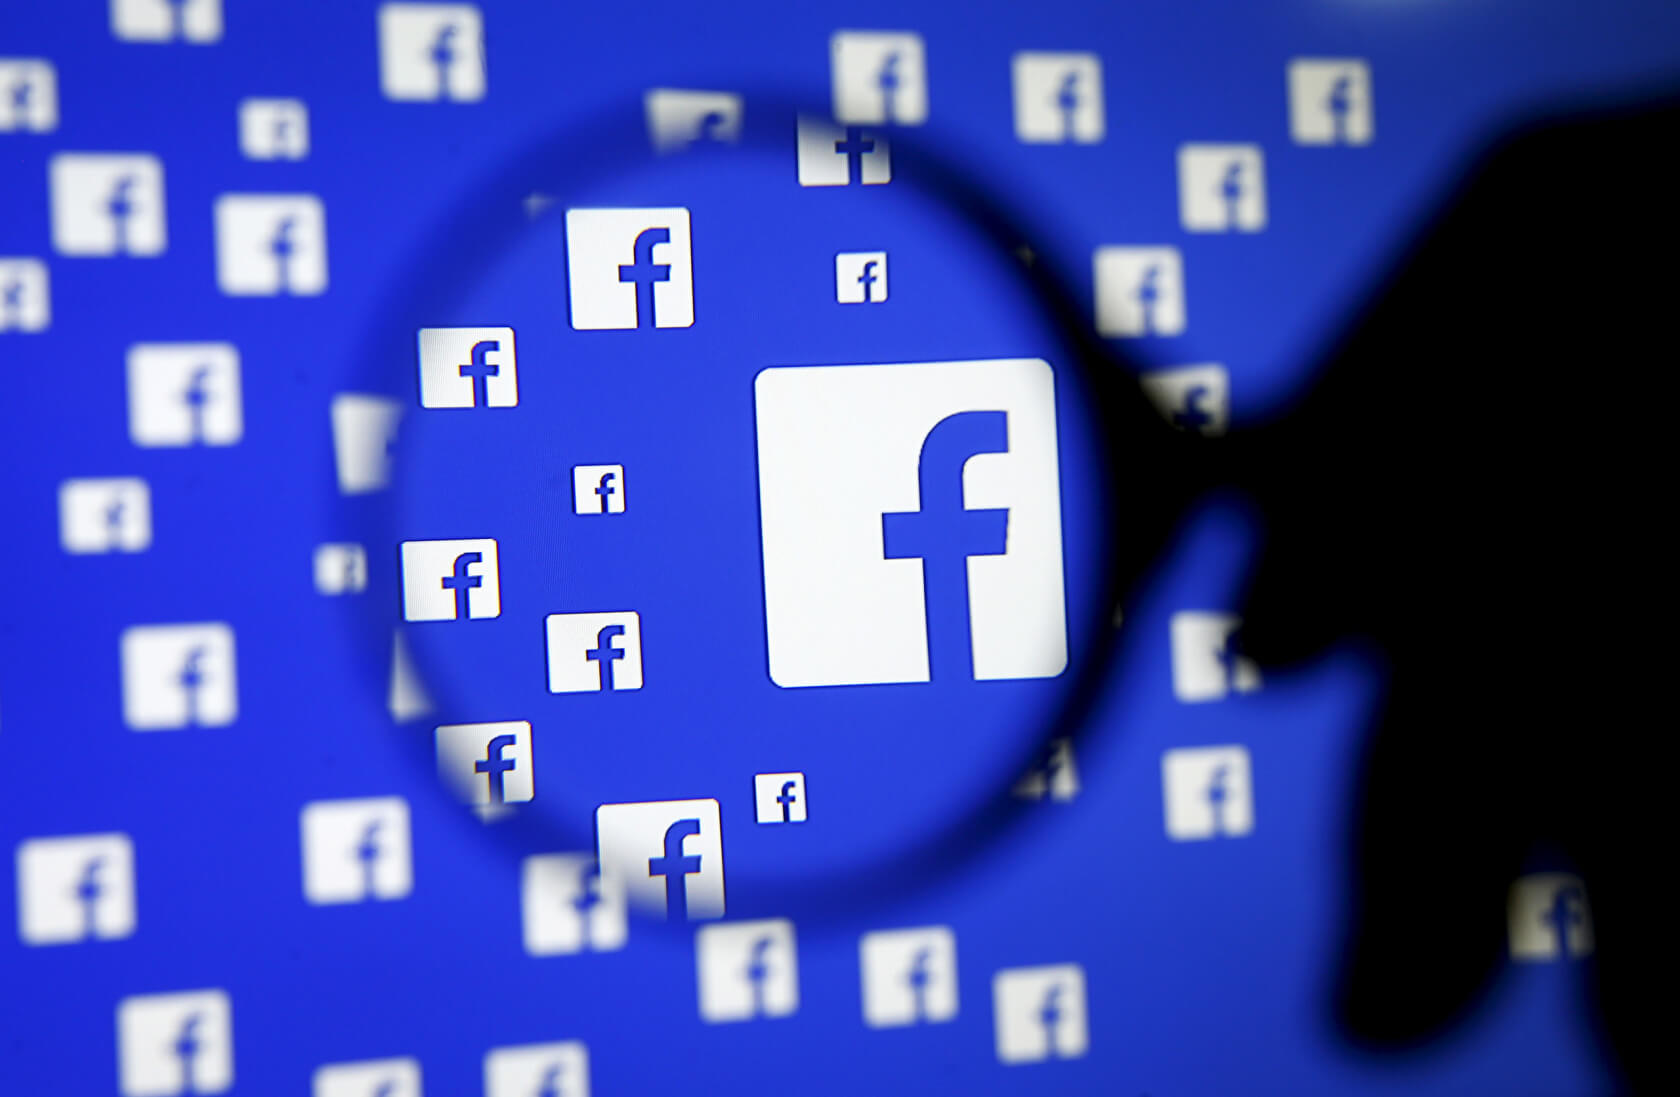 Facebook's Protect security feature is essentially Spyware